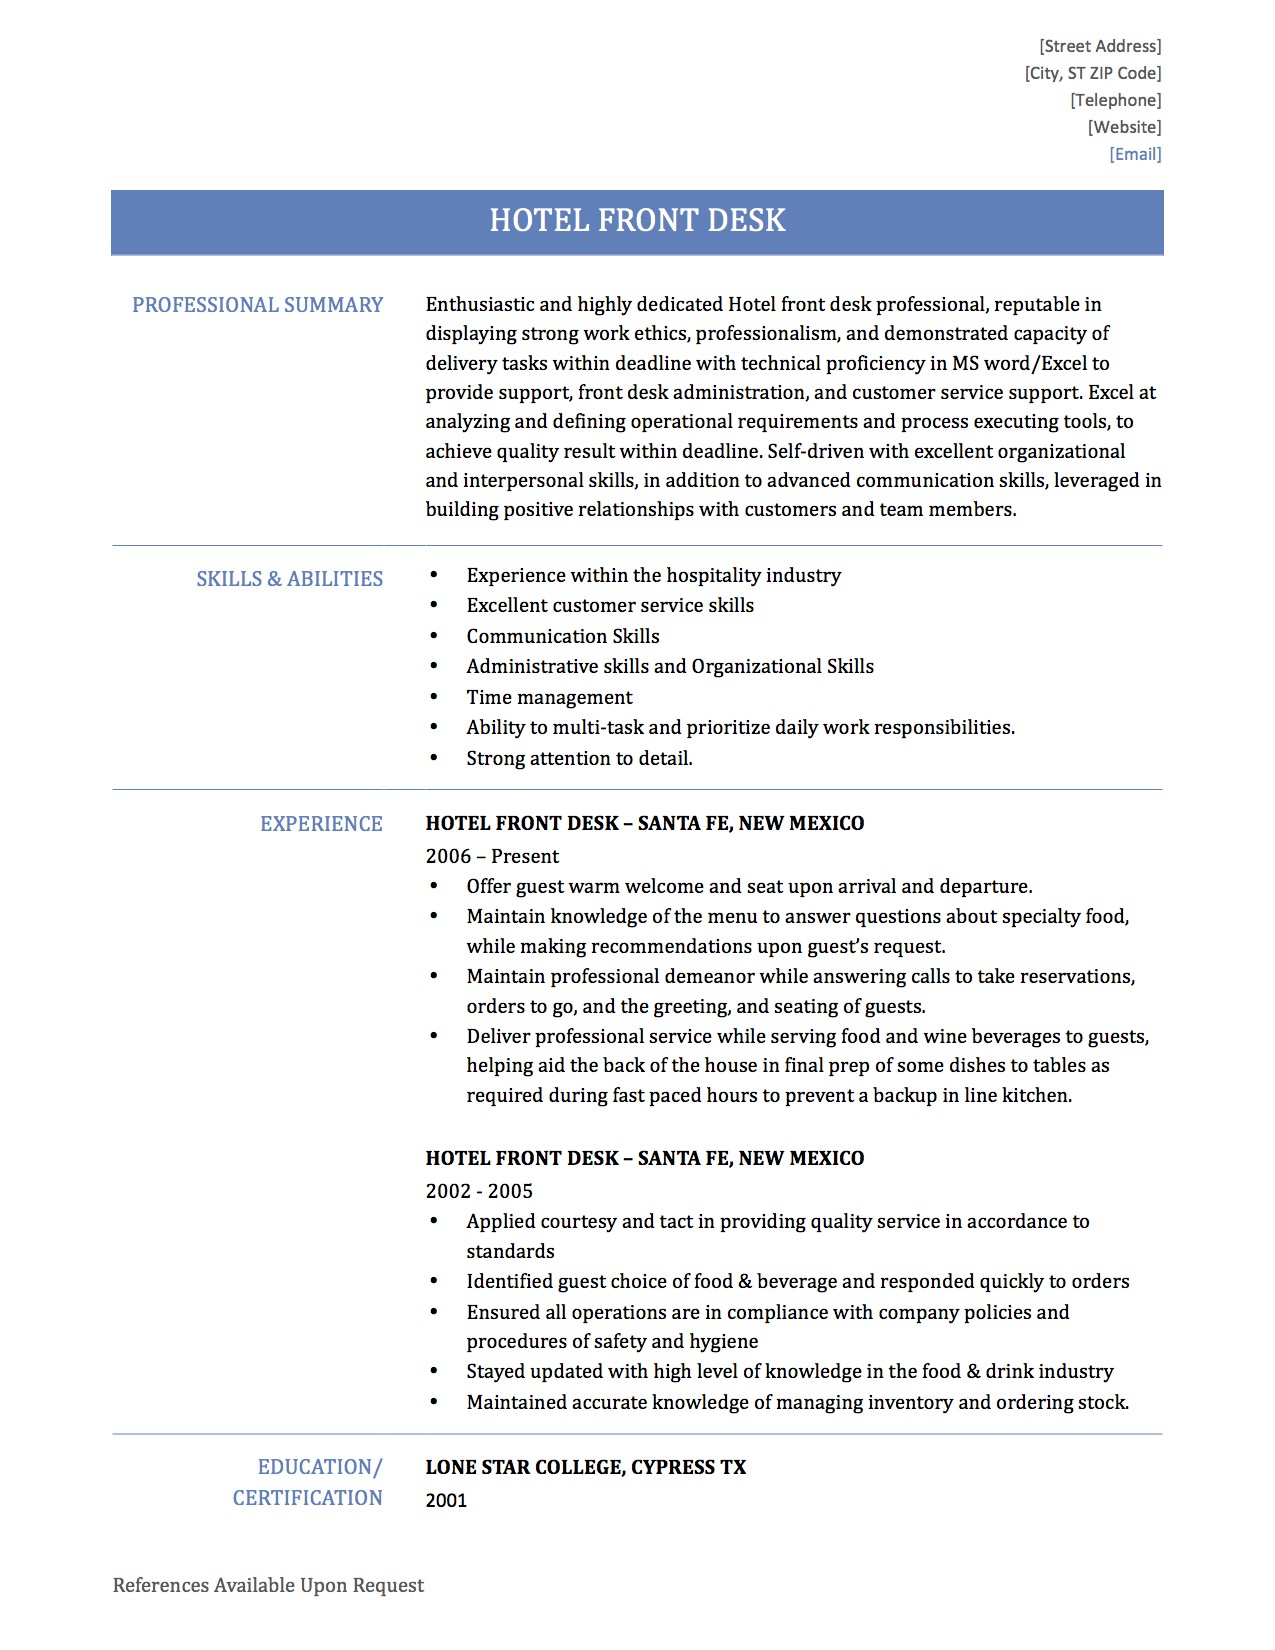 to write hotel front desk resume by builders medium j9lhxbqqzynkpynb oracle erp Resume Hotel Front Desk Resume